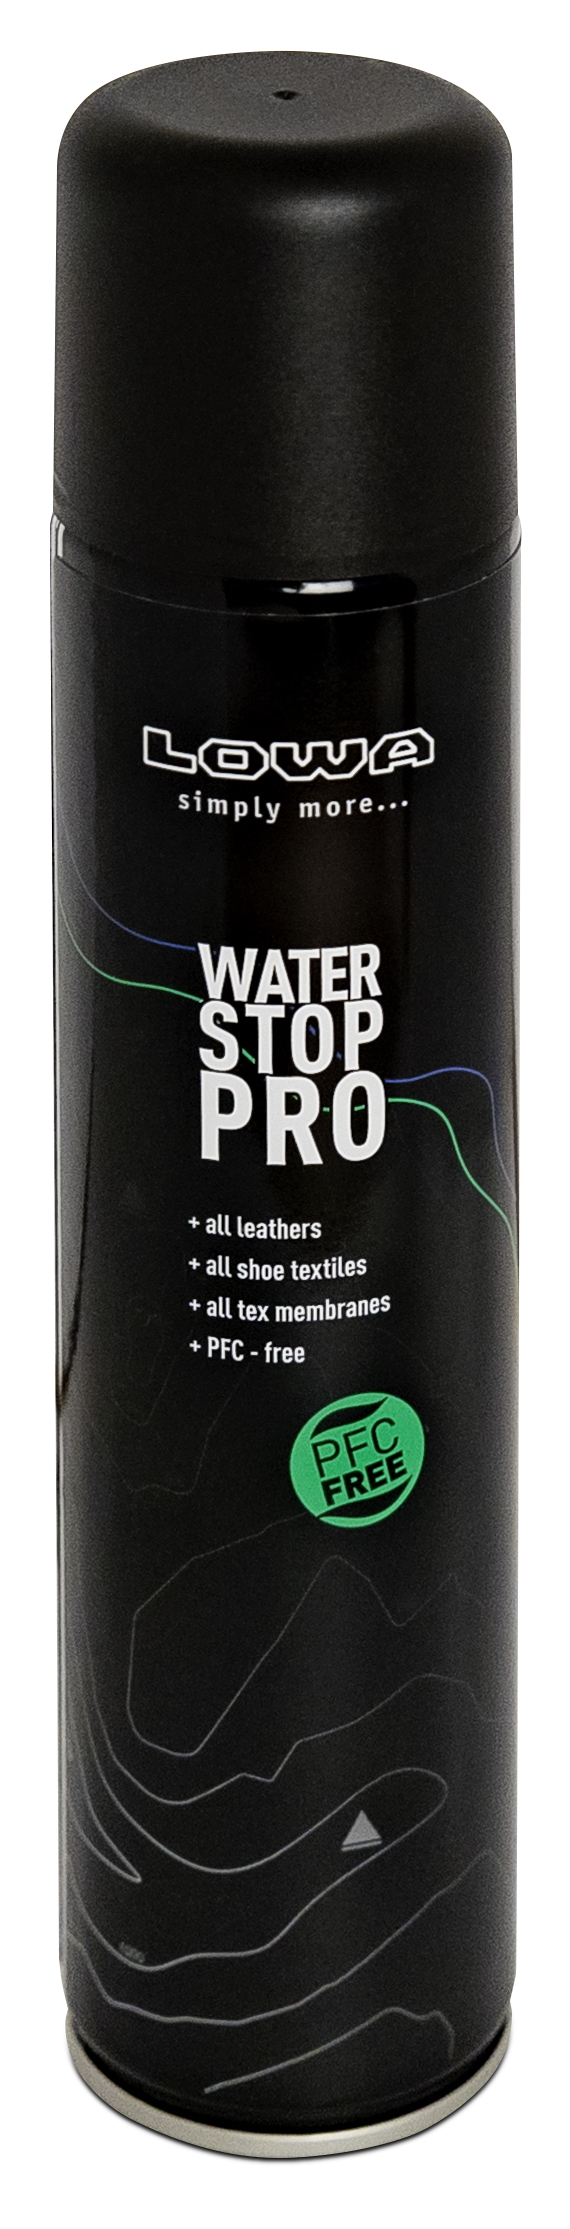 WATER STOP PRO (300ml)